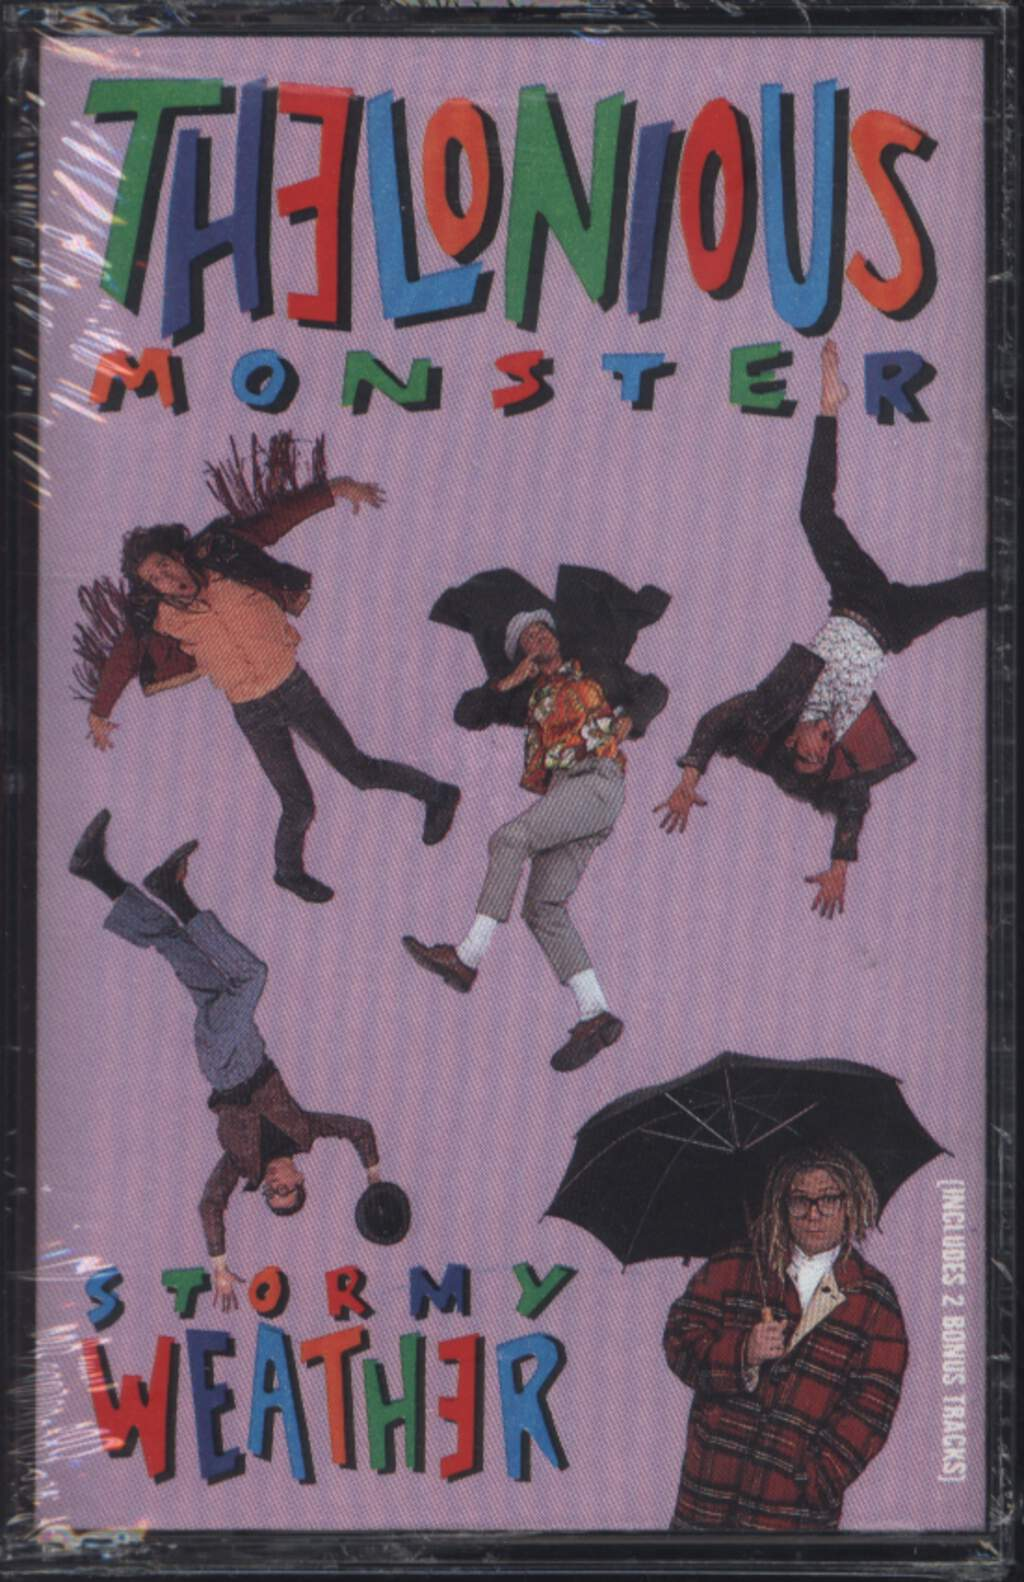 Thelonious Monster: Stormy Weather, Compact Cassette